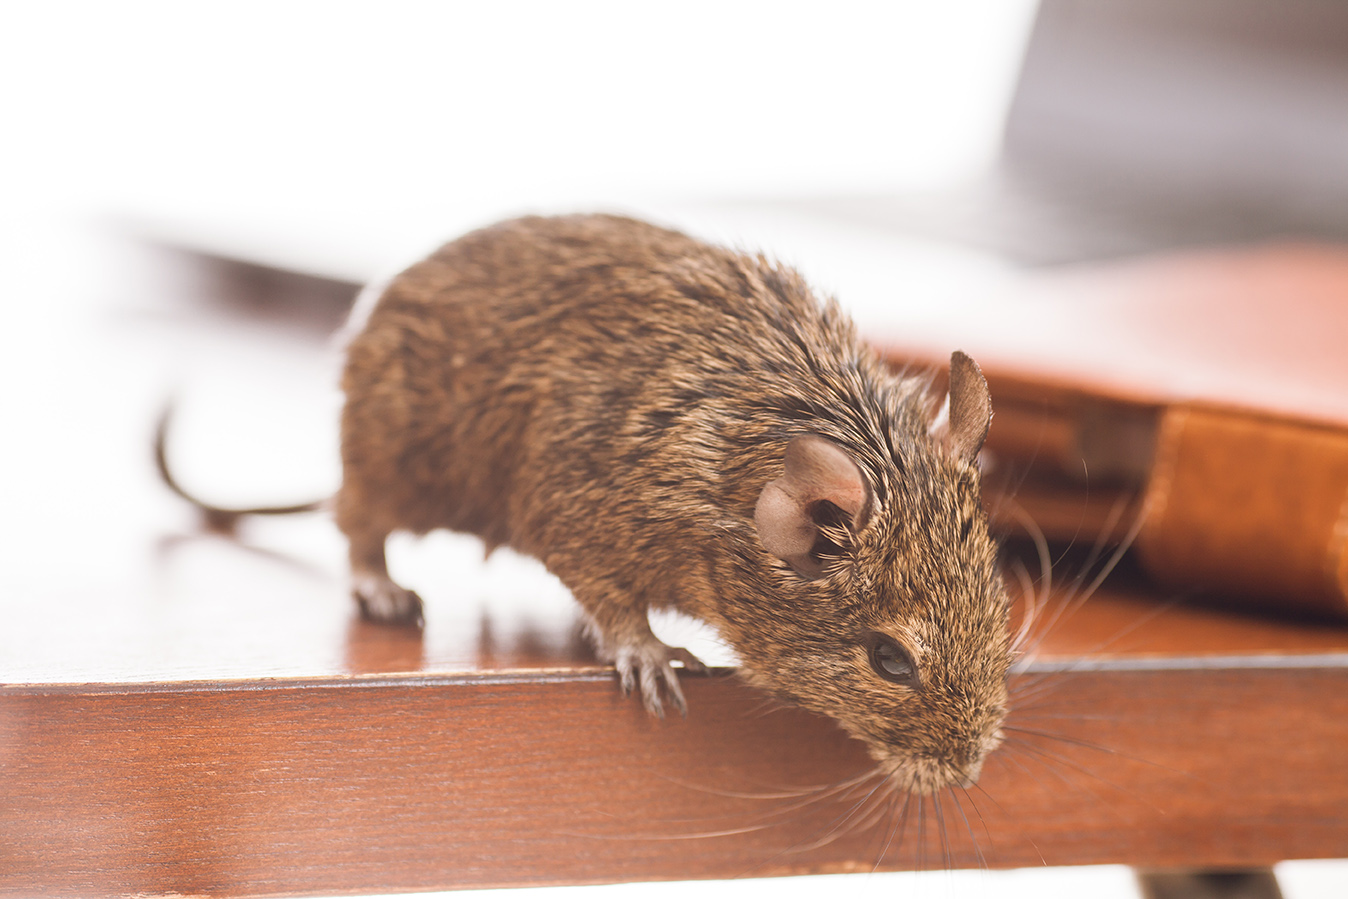 Eek! New Survey Finds More Than One-Third of American Homeowners Have Spotted a Rodent in Their Home in the Past Year